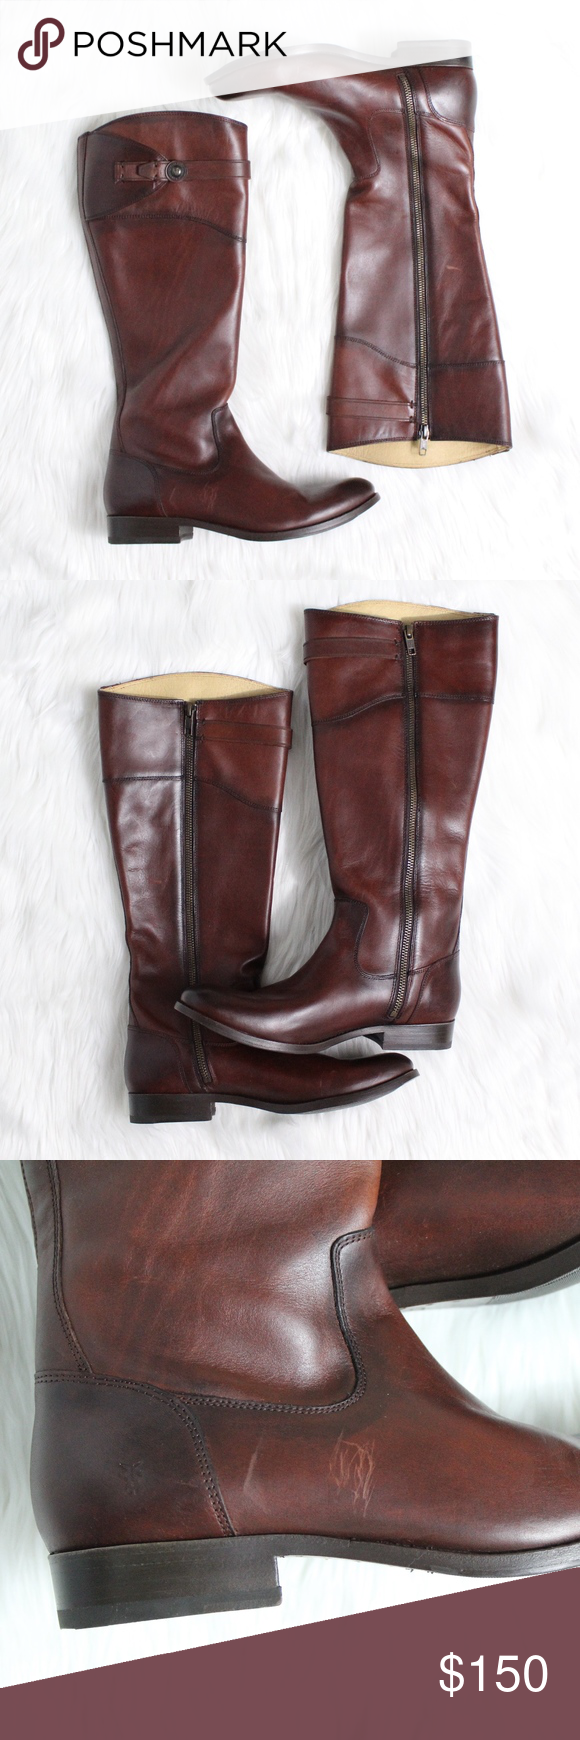 """FRYE Molly Button Riding Boot in Redwood Brand new without box!  Minor scratching on outer side of right boot, see pictures.  Size: 9 Color: Redwood  Superior craftsmanship shines through on a pair of timeless leather riding boots shaped with a rounded toe and finished with a smartly buttoned strap.  1"""" heel. 16 1/4"""" boot shaft; 15 1/2"""" calf circumference. Side zip closure. Leather upper and lining/leather and rubber sole. By Frye; imported. Frye Shoes"""